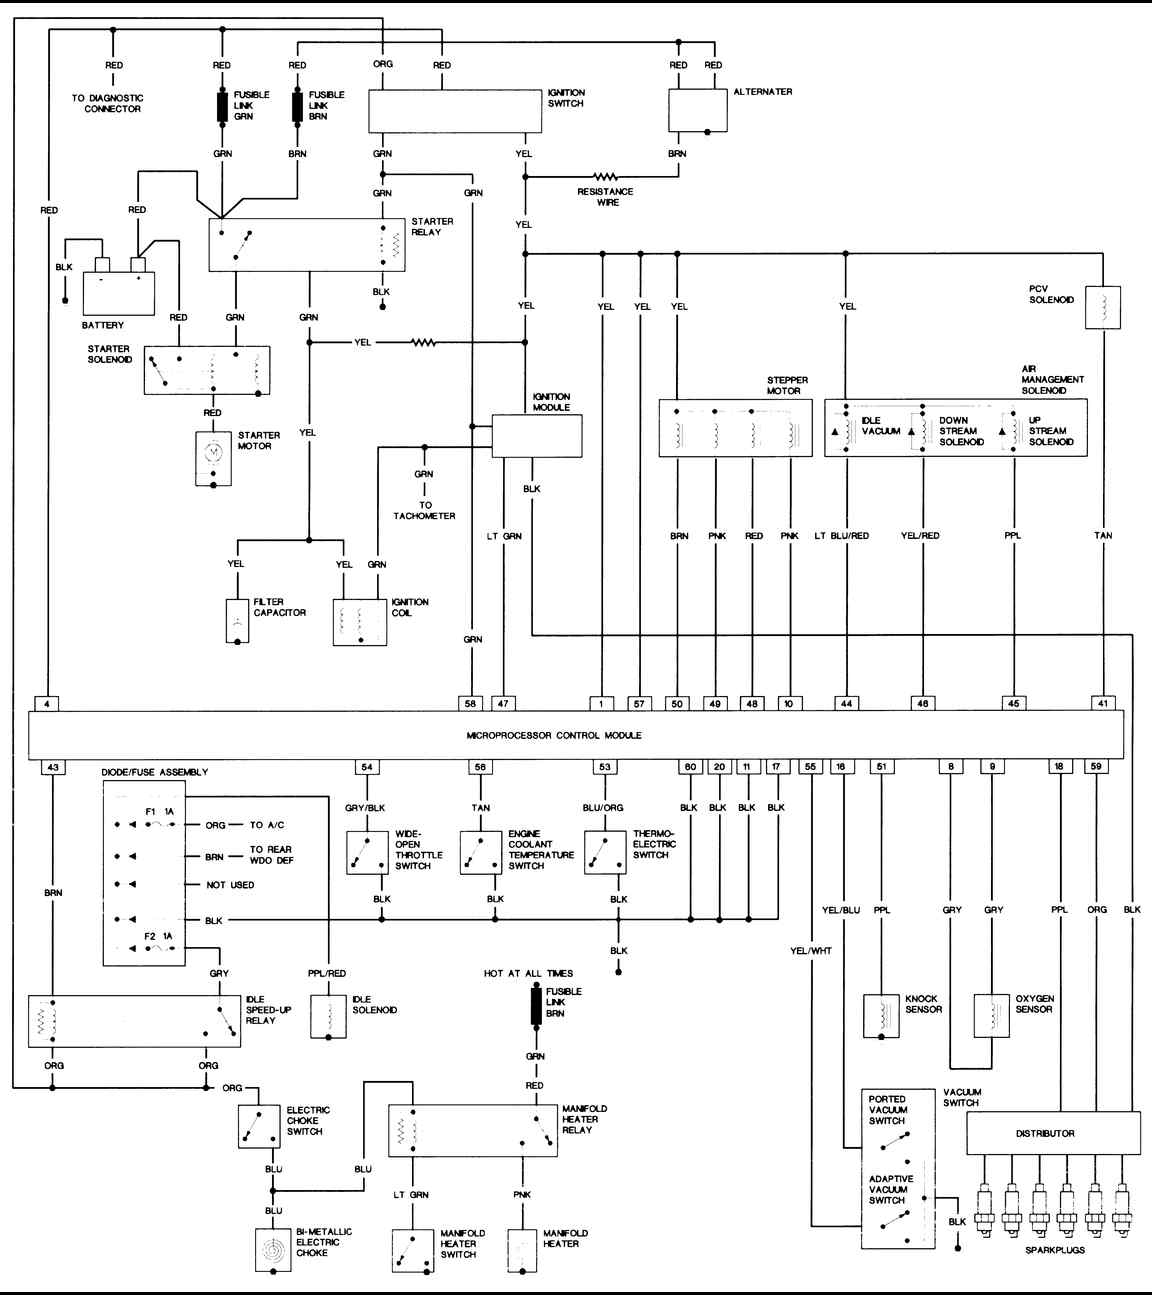 jeep jk a c wiring diagram wiring diagram schematics 2006 jeep liberty air conditioning wiring diagram jeep wrangler wiring diagram wiring diagram schematics jeep jk engine jeep jk a c wiring diagram